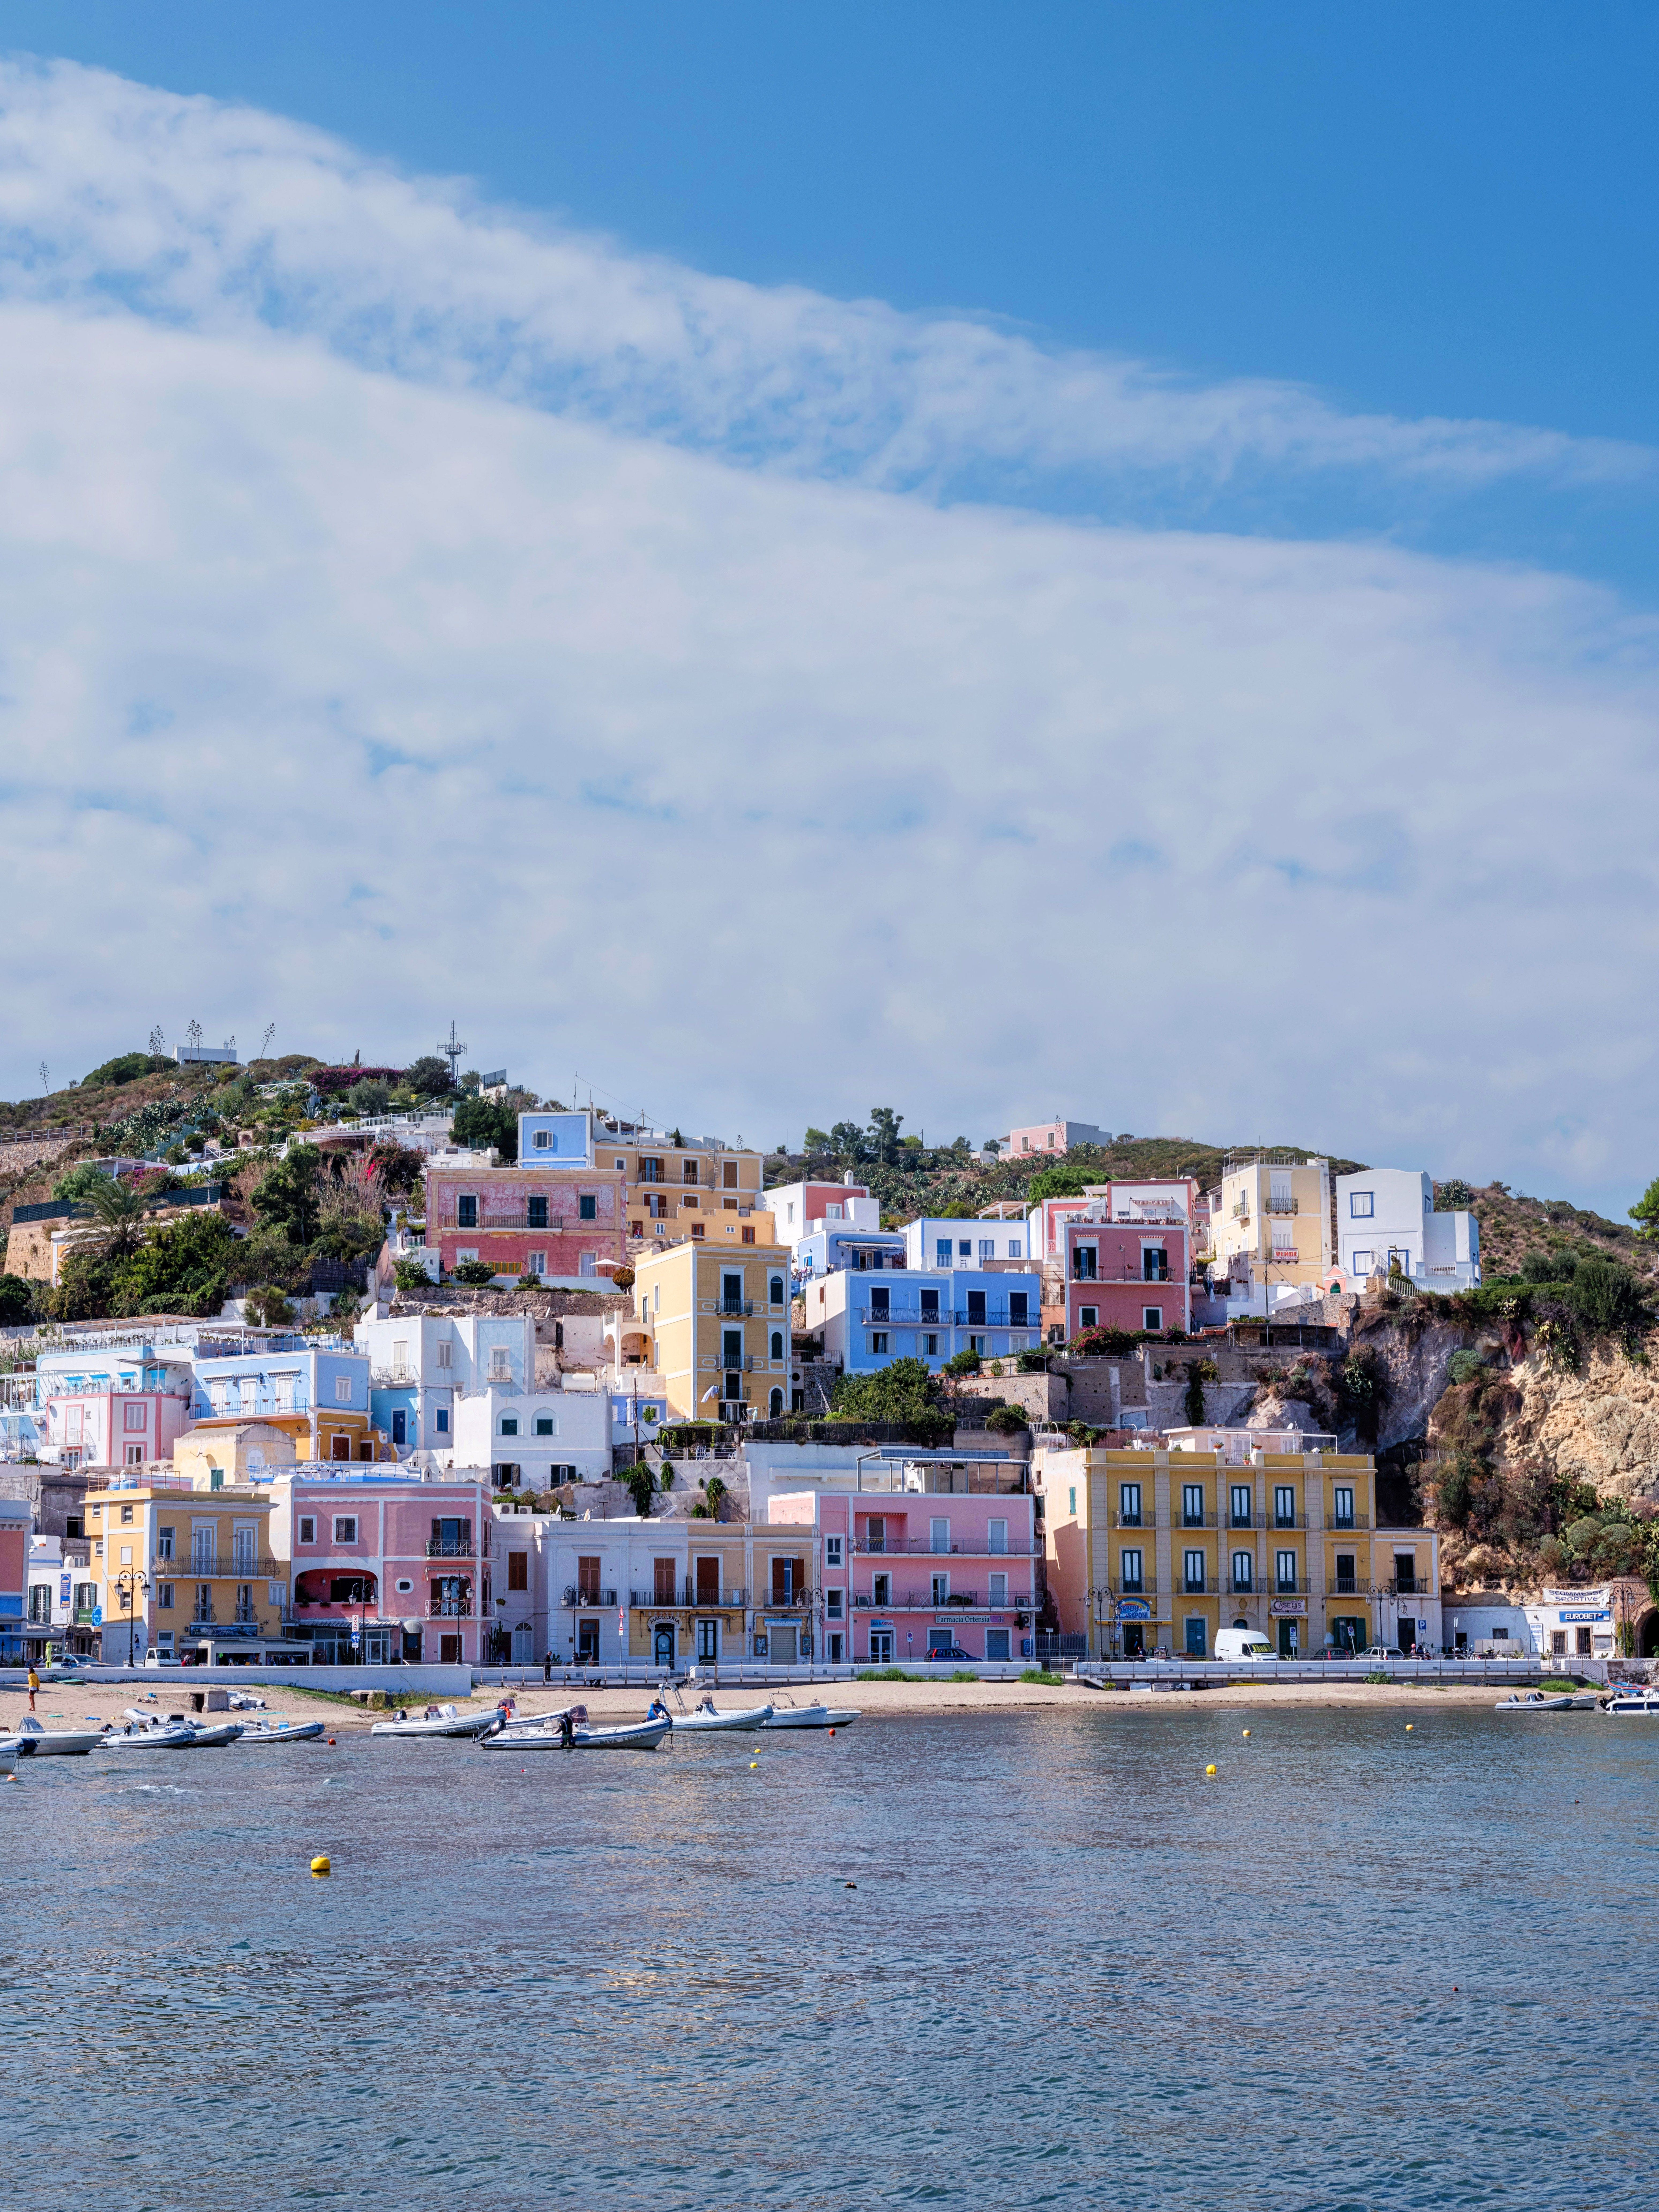 Vacation Like the Romans in Low-Key Ponza - Condé Nast Traveler